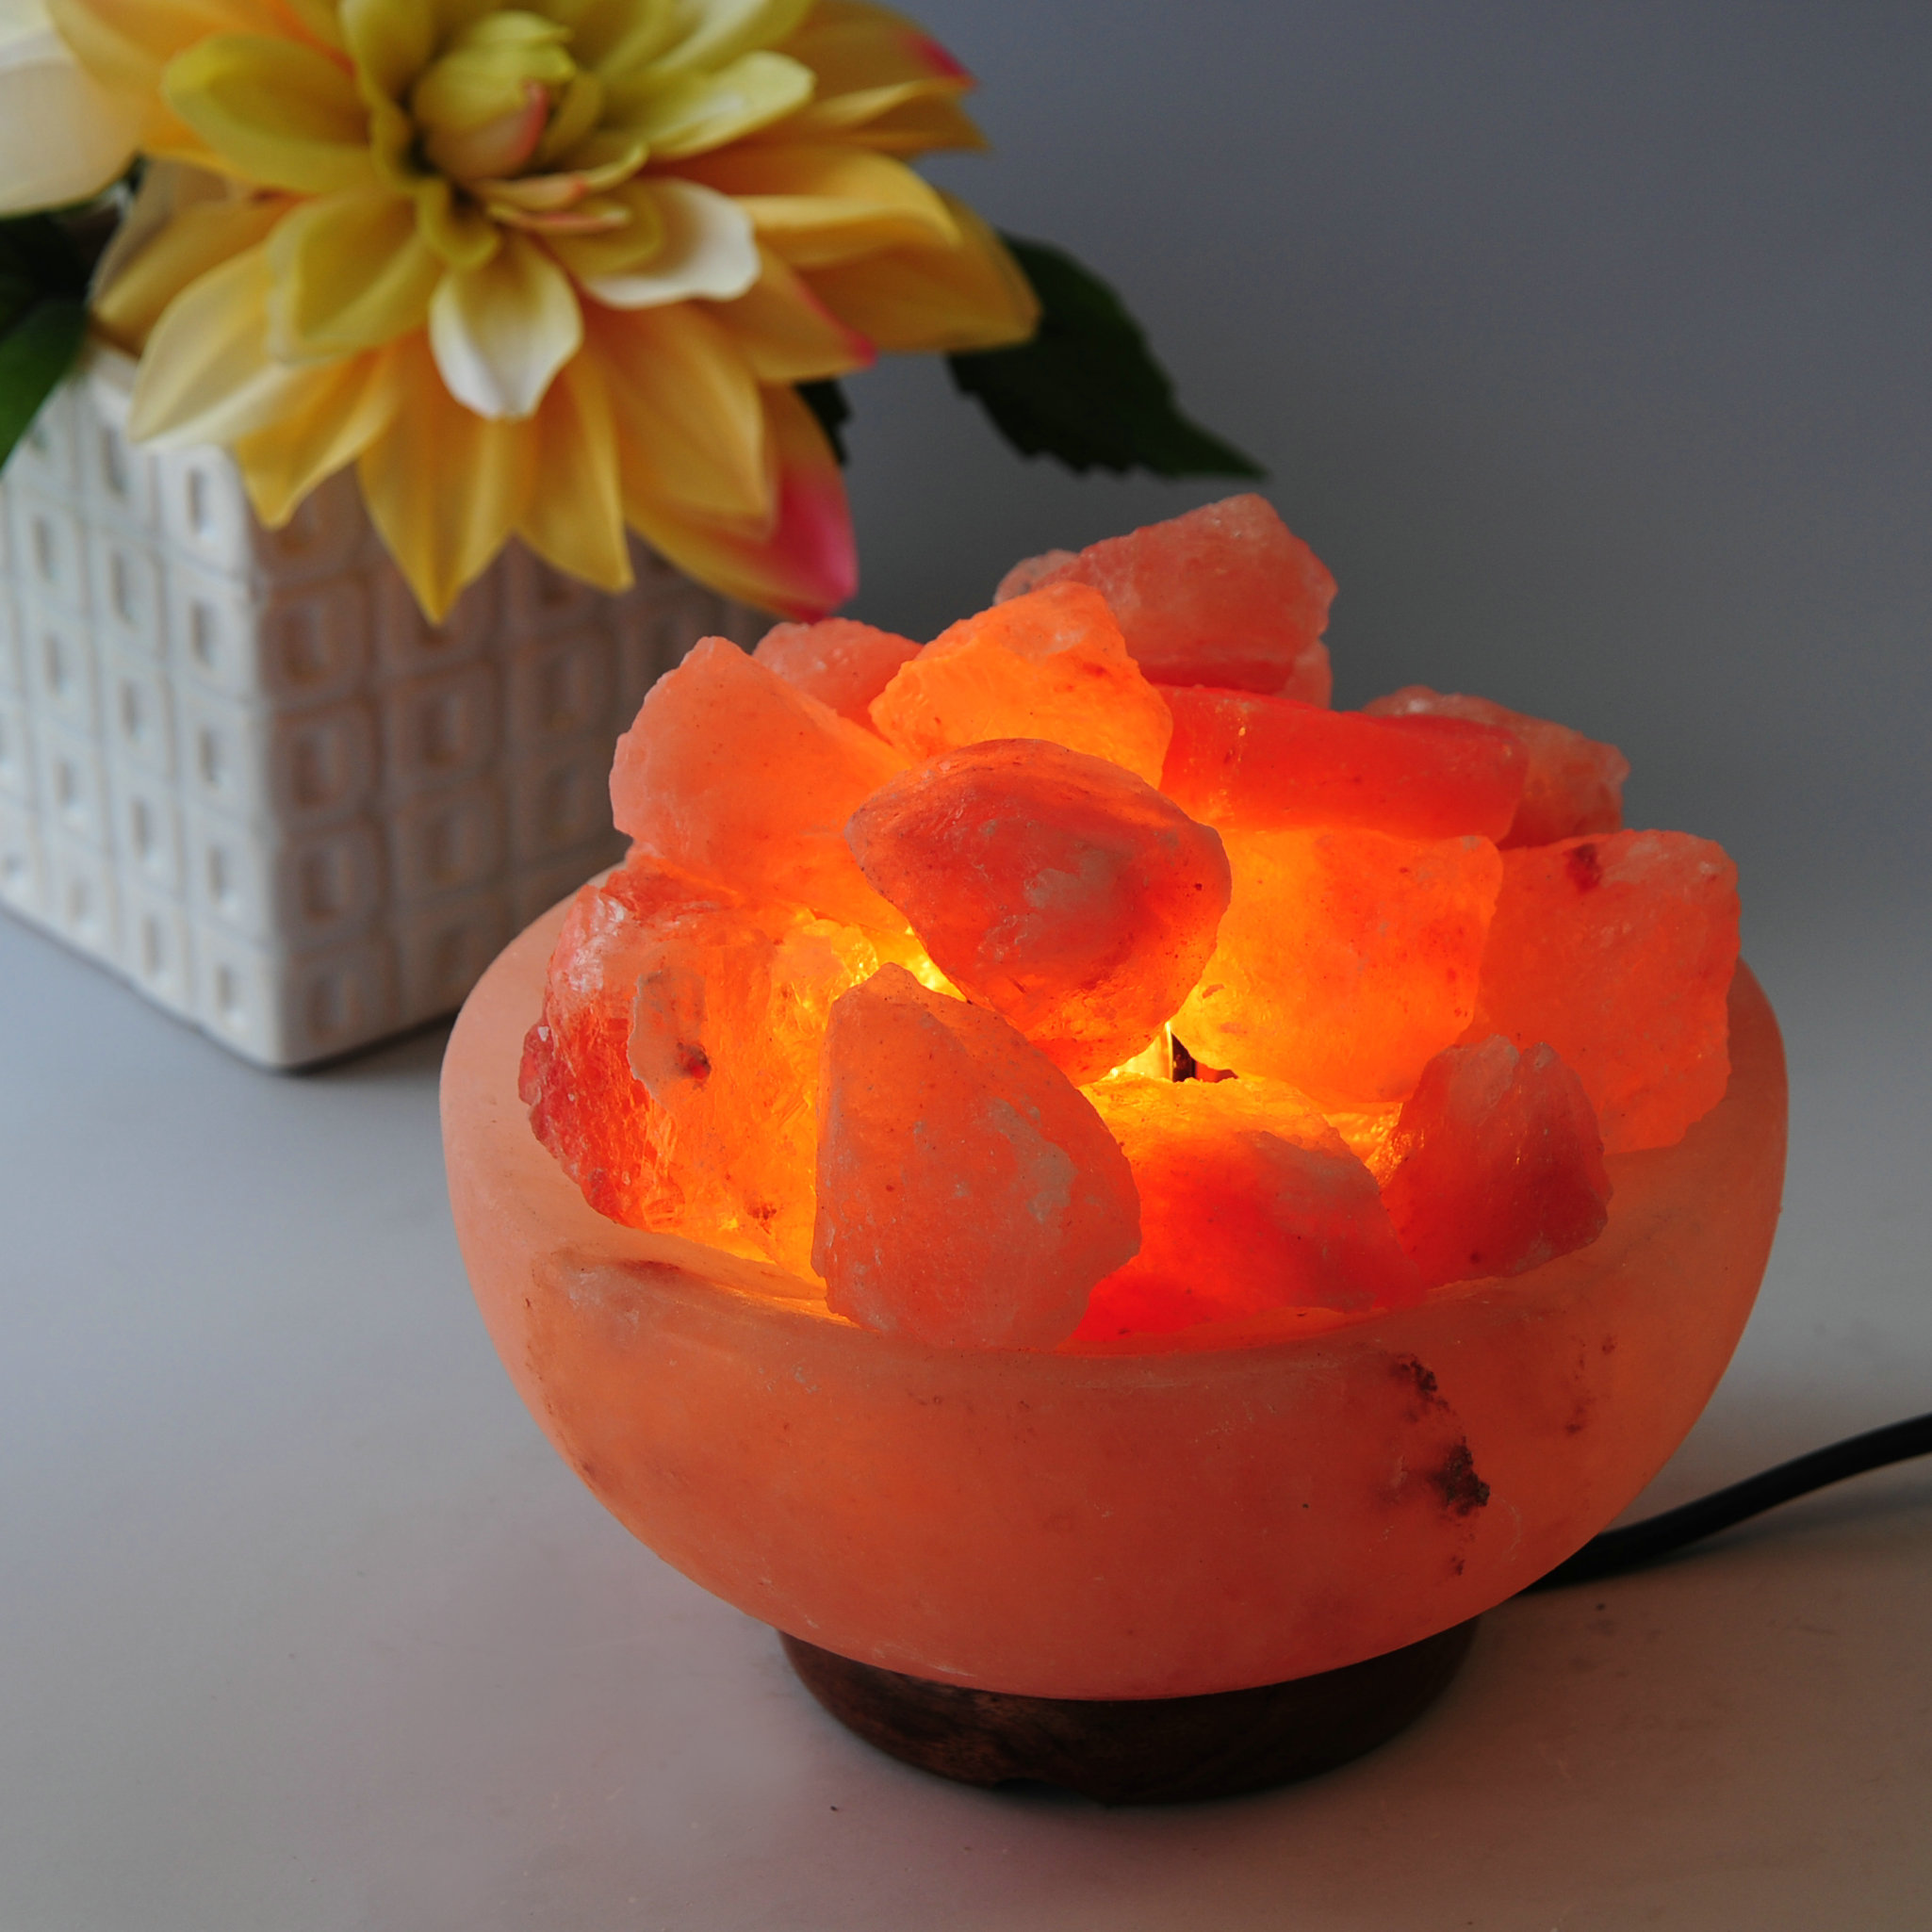 "JIC Gem Large 7"" Round 9-10 Lb Fire Himalayan Bowl Salt Lamp (FL01), With Dimmer Cord"